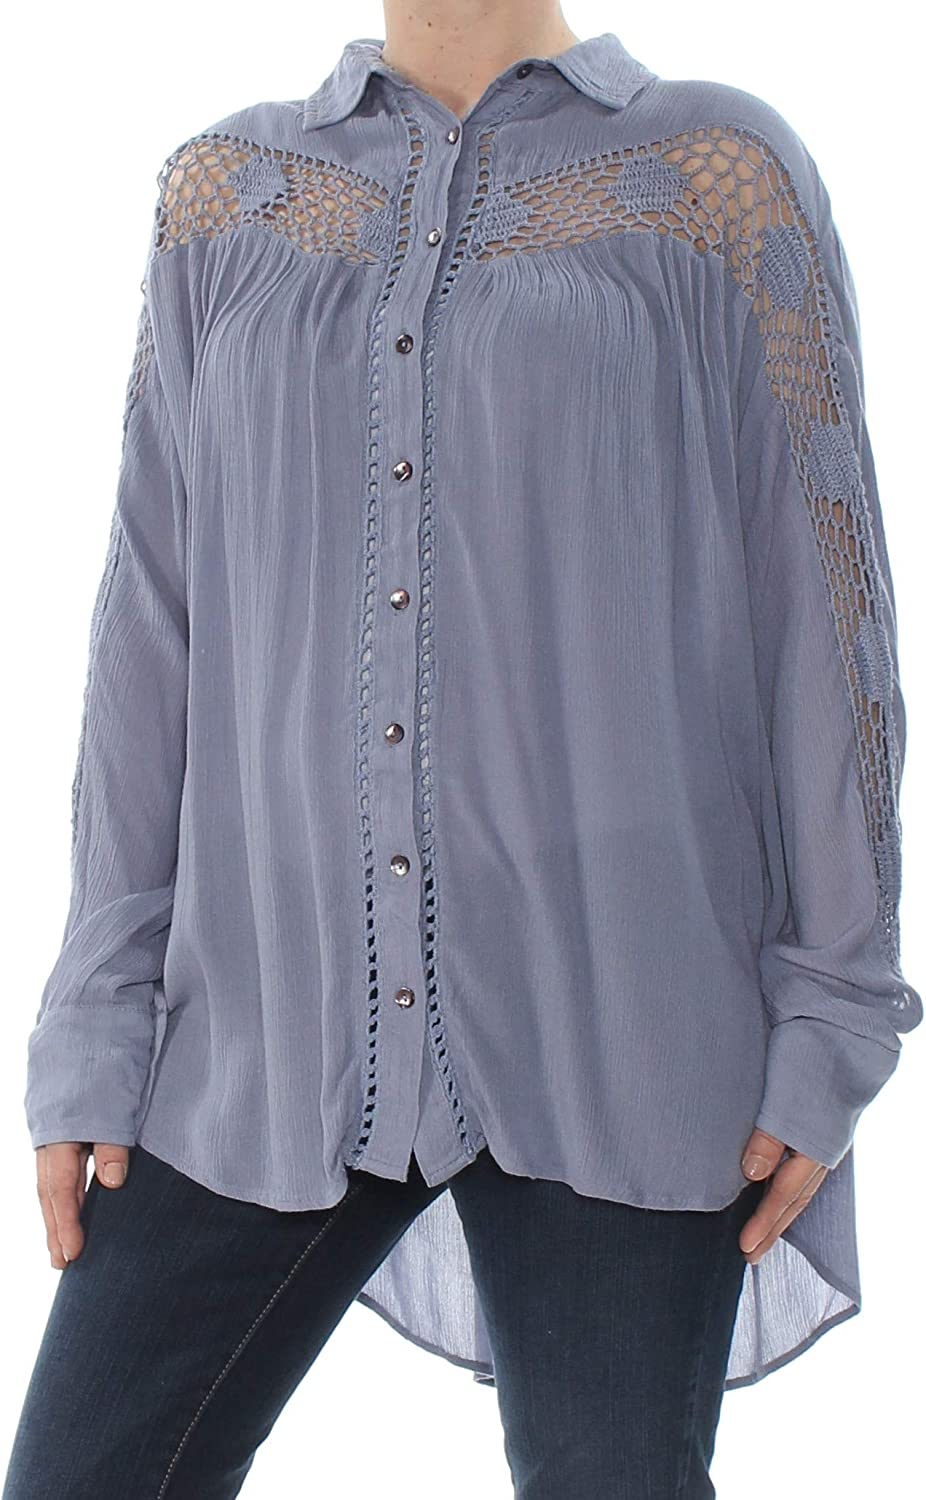 Free People | Katie Bird Button-Up Long-Sleeve Top | Blue